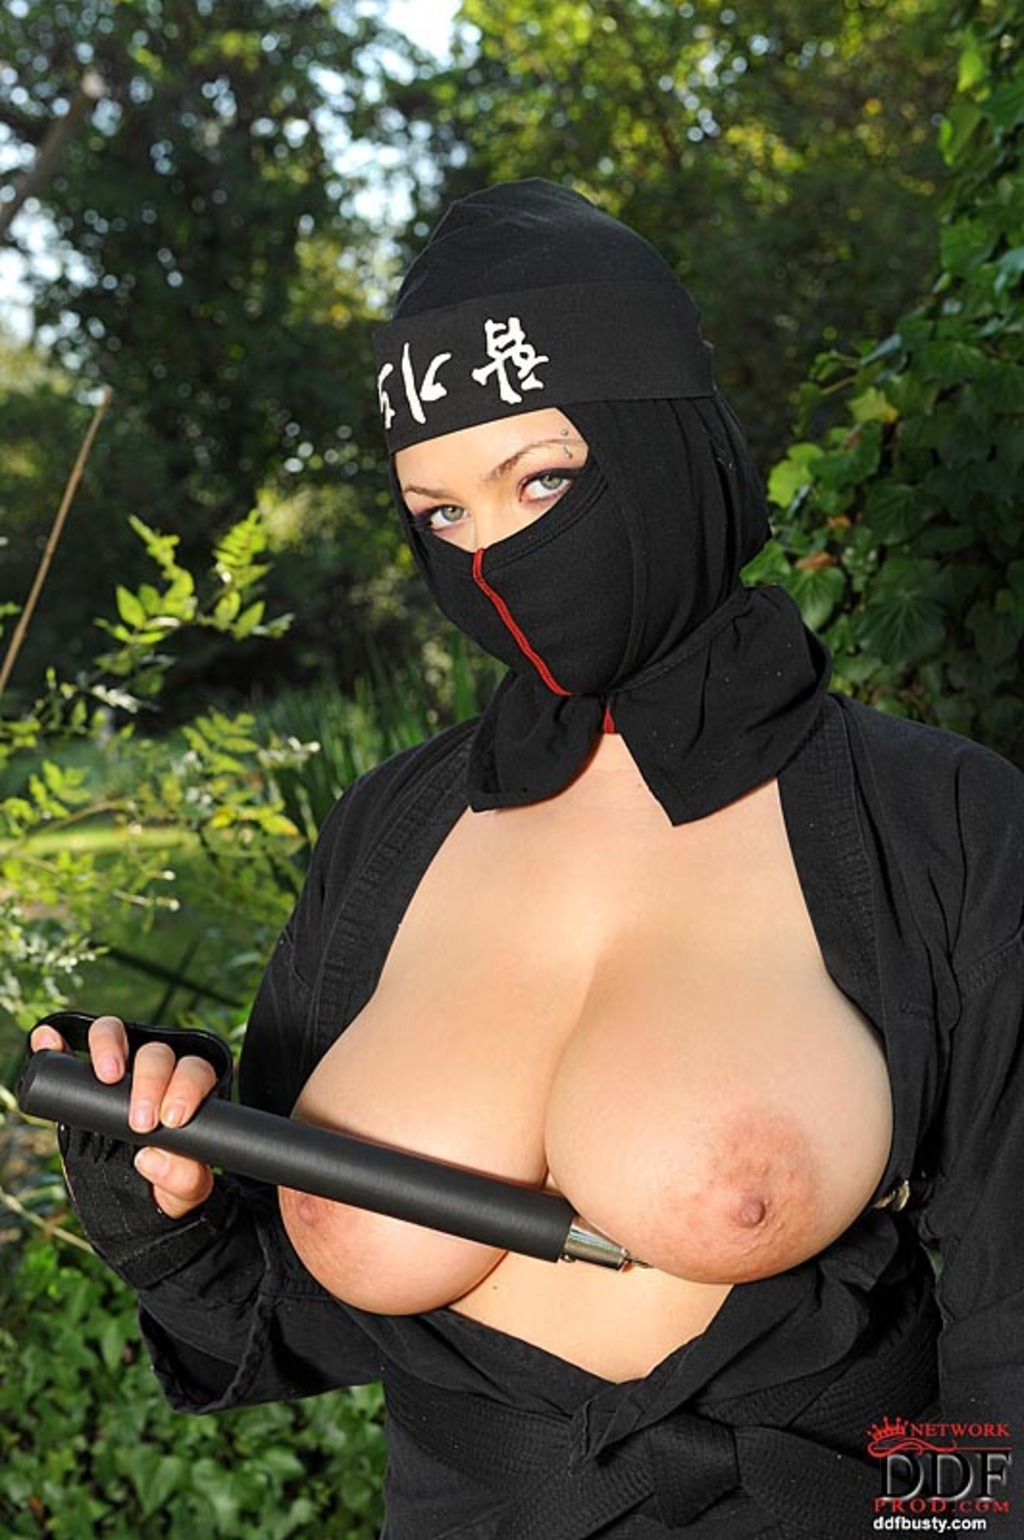 Ninja girl porn picture hentia videos